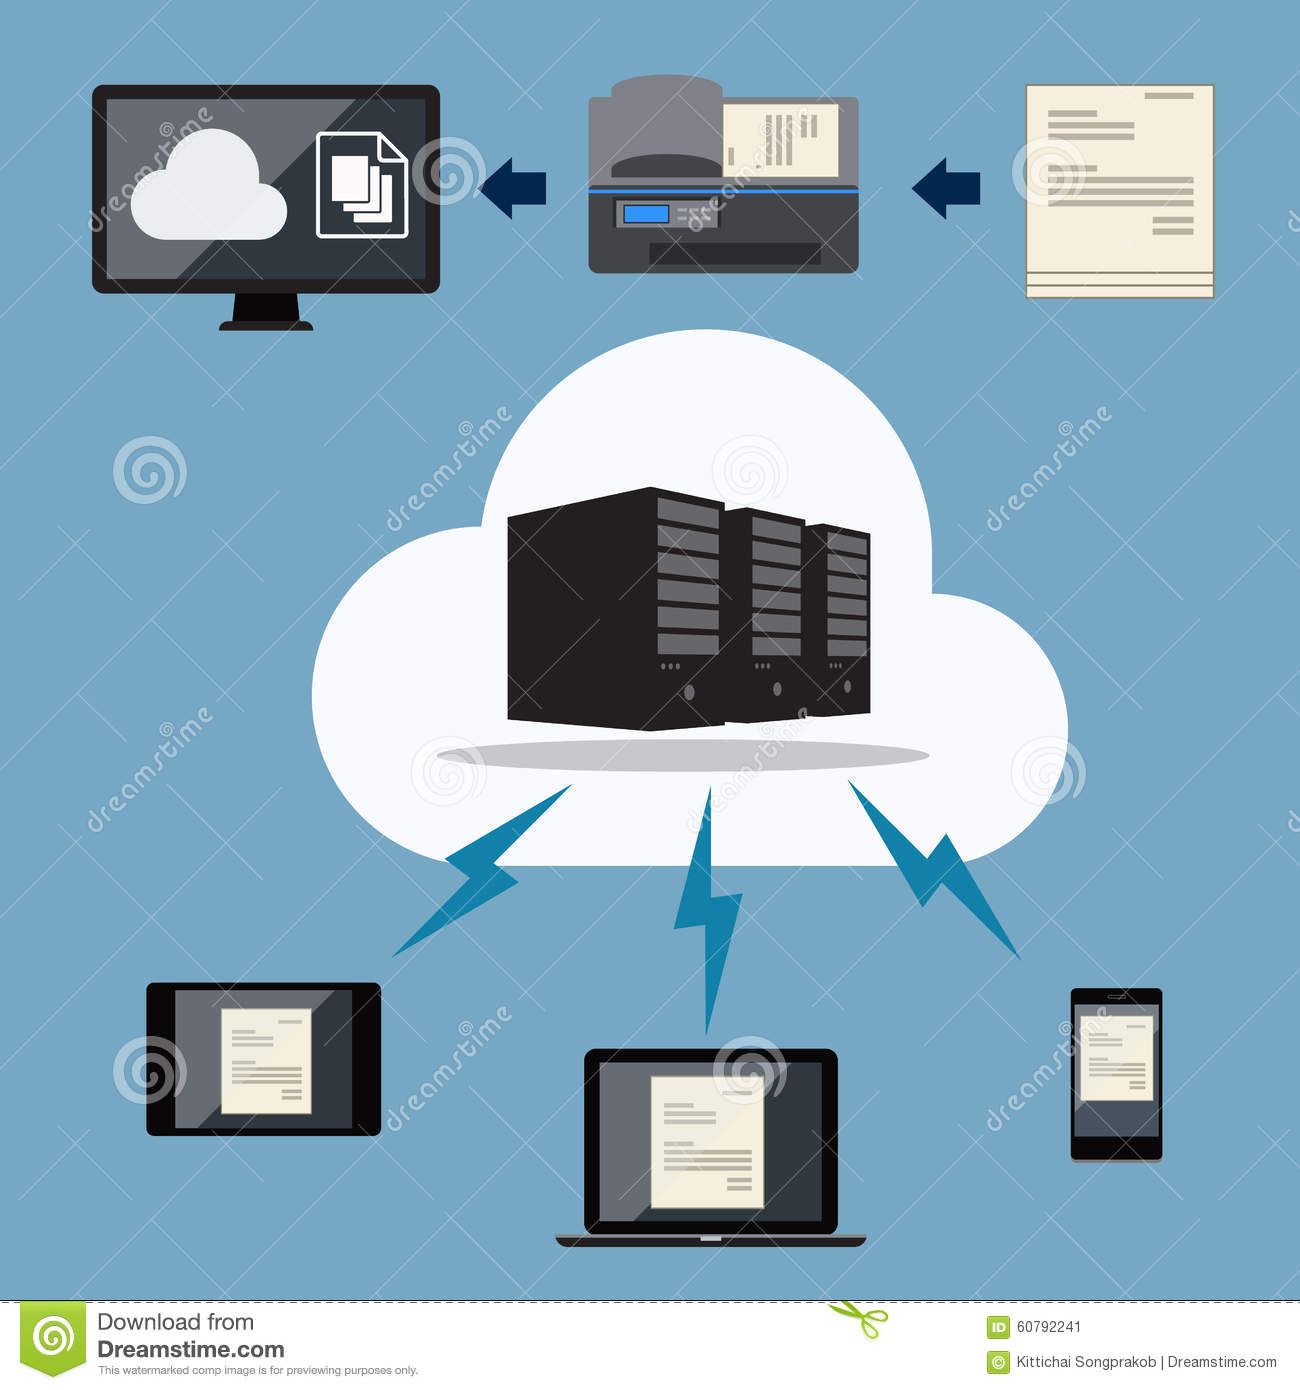 Big data cloud document storage stock vector image for Cloud document storage for business